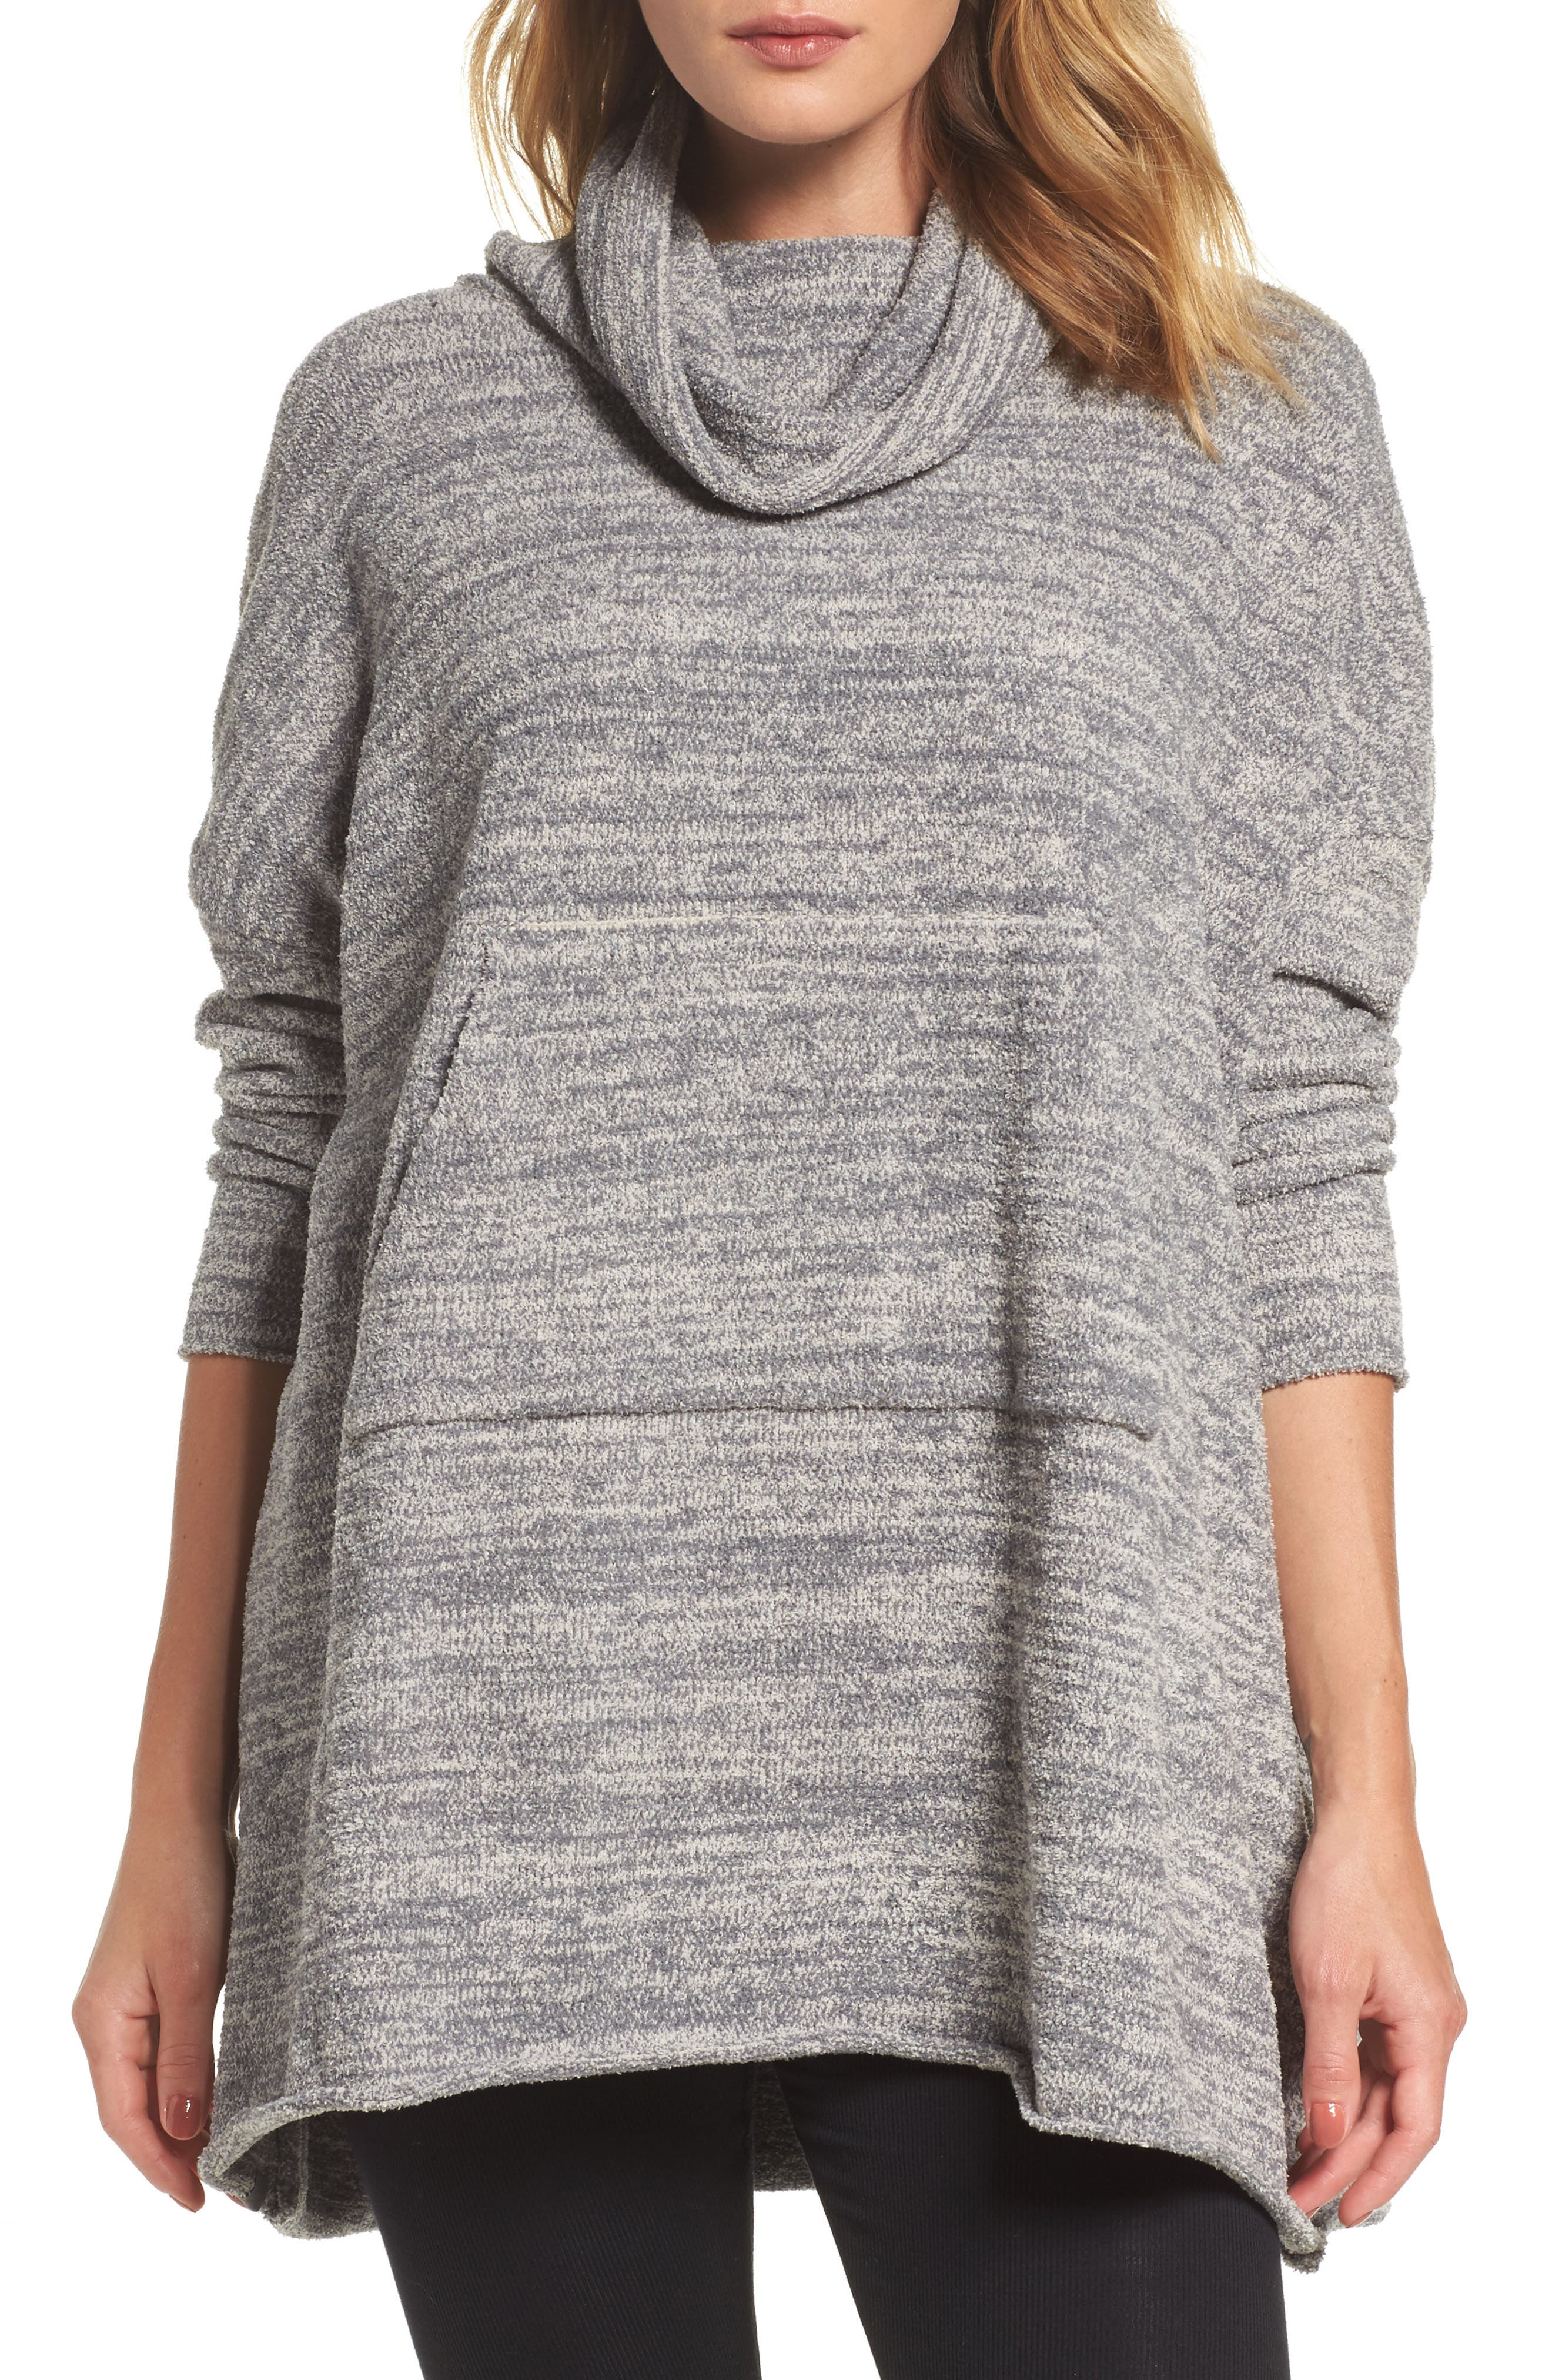 Cozychic<sup>®</sup> Lounge Pullover,                             Main thumbnail 1, color,                             GRAPHITE/ STONE HEATHERED